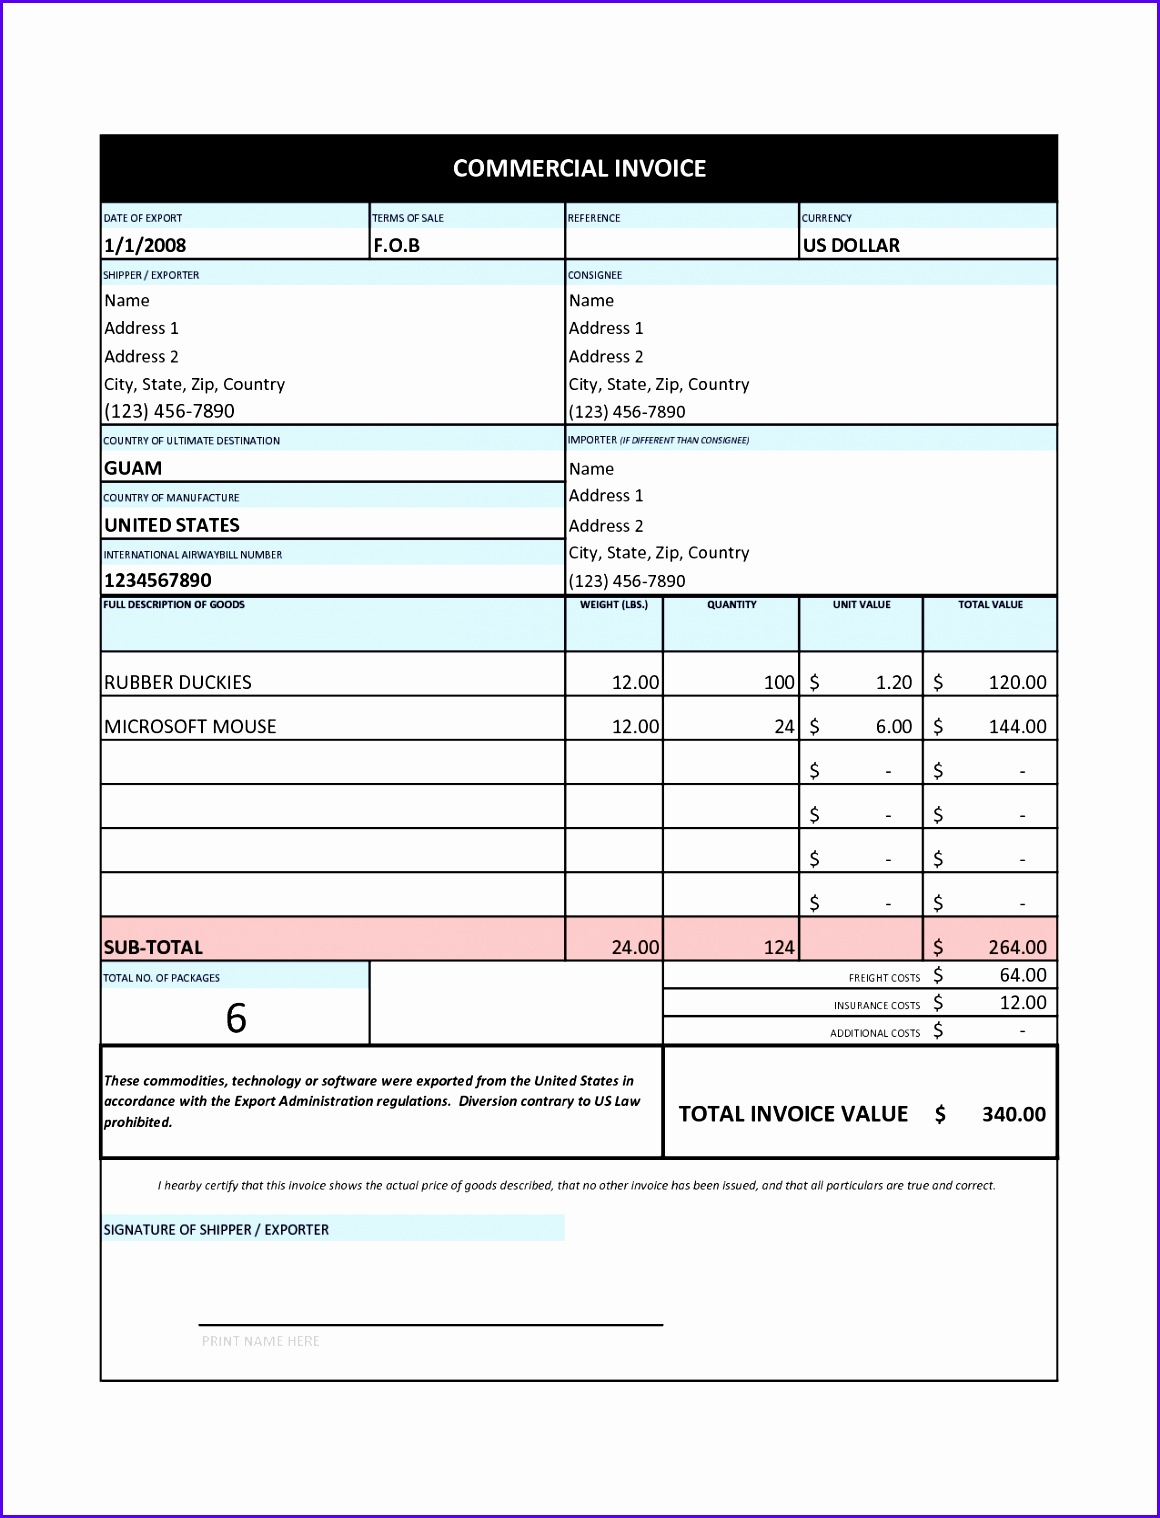 Invoice Sample Canada Tax 11601518